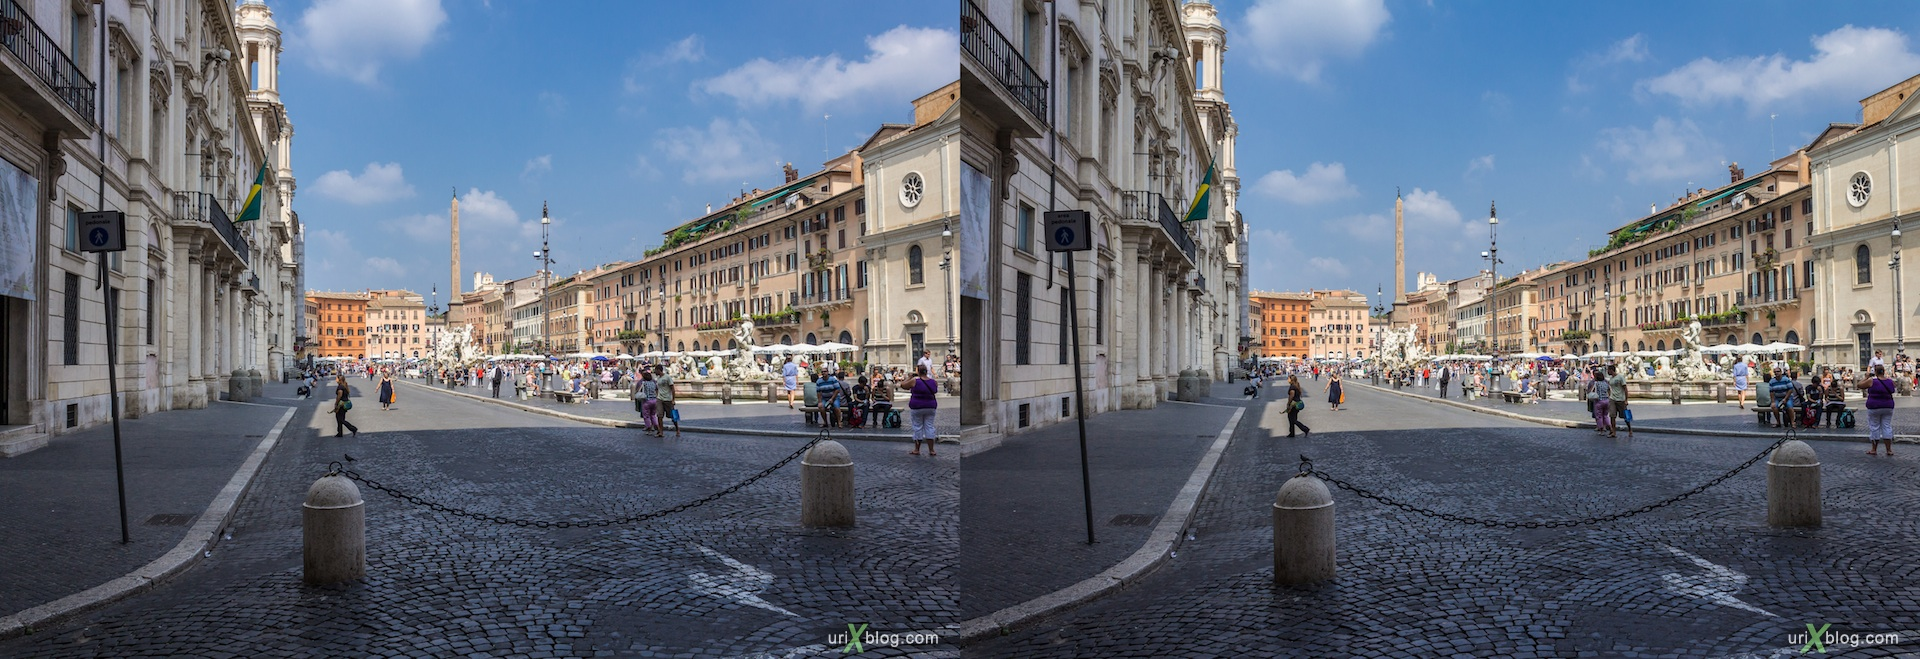 2012, piazza Navona square, 3D, stereo pair, cross-eyed, crossview, cross view stereo pair